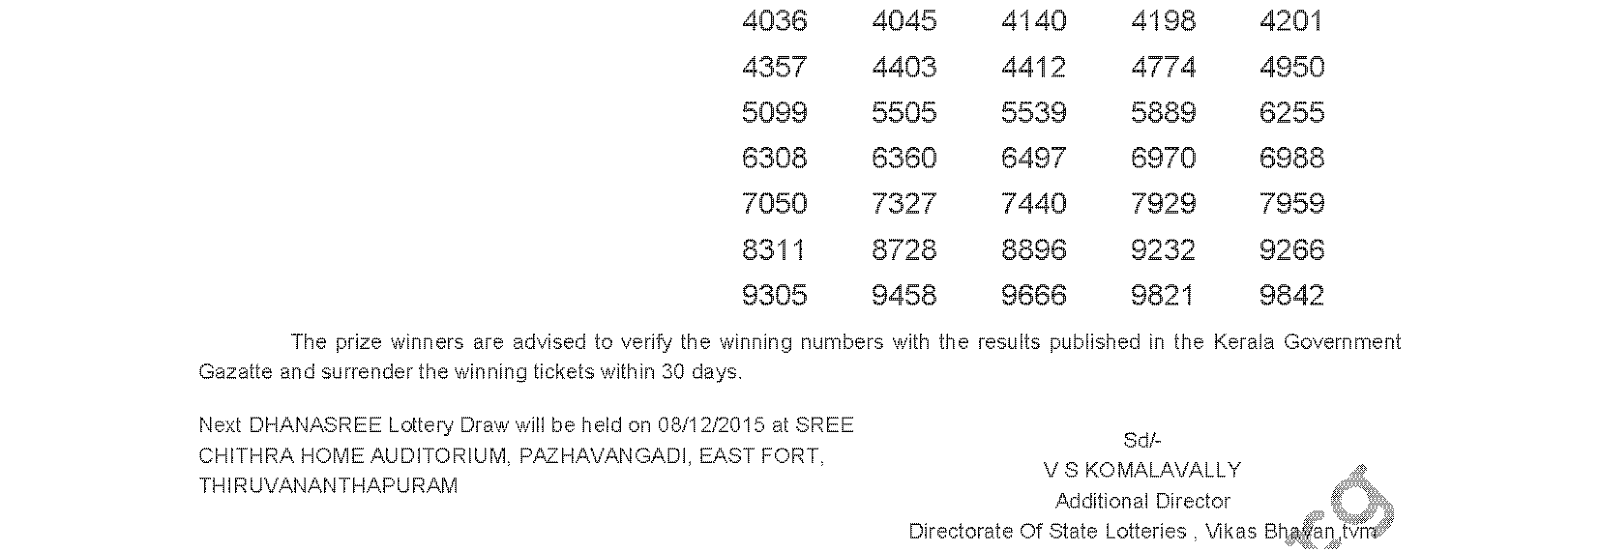 DHANASREE Lottery DS 214 Result 01-12-2015